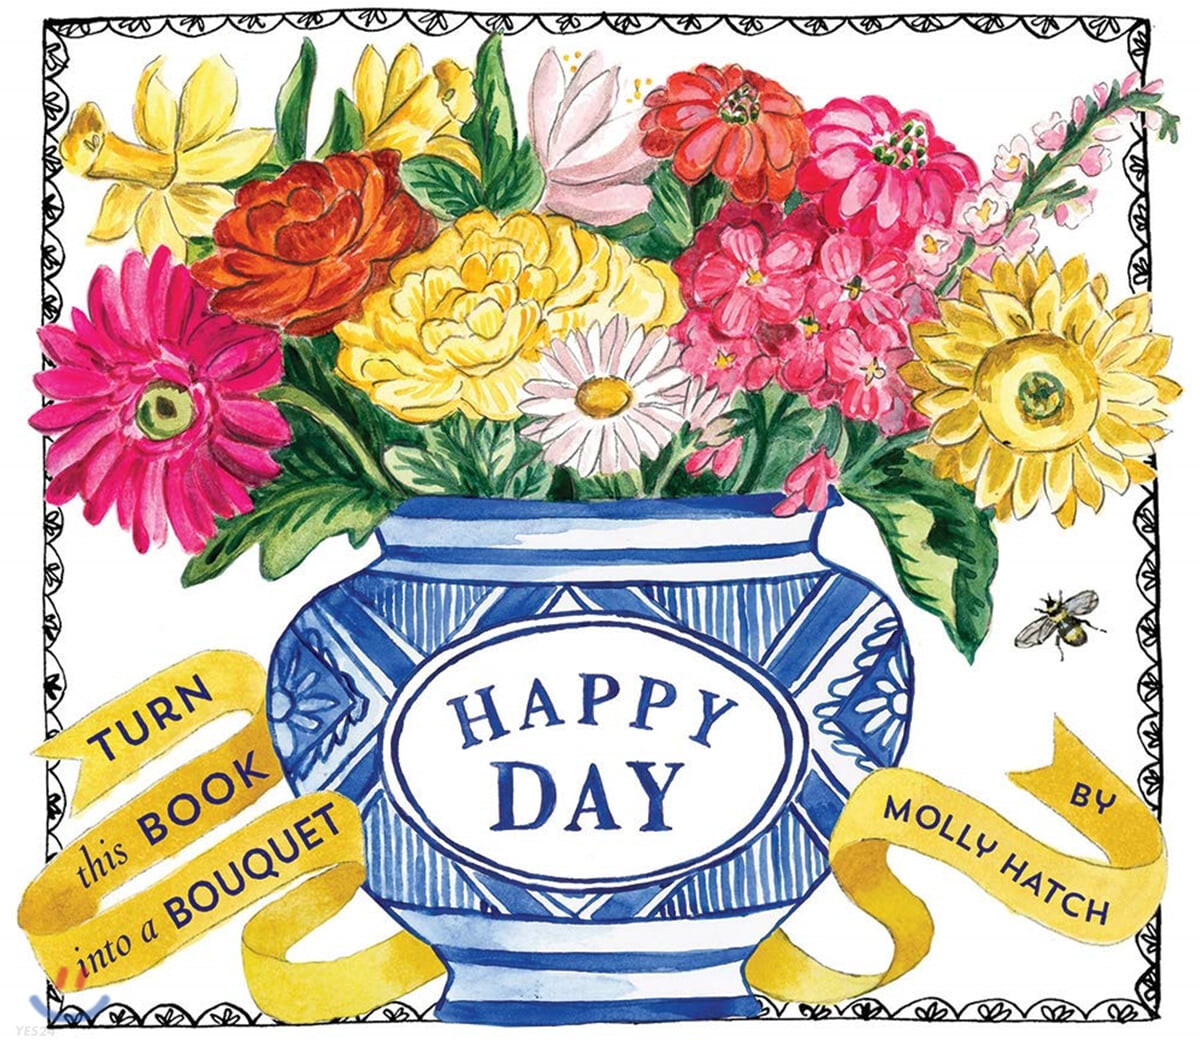 Happy Day (Uplifting Editions): A Bouquet in a Book (부케북 / 팝업북)